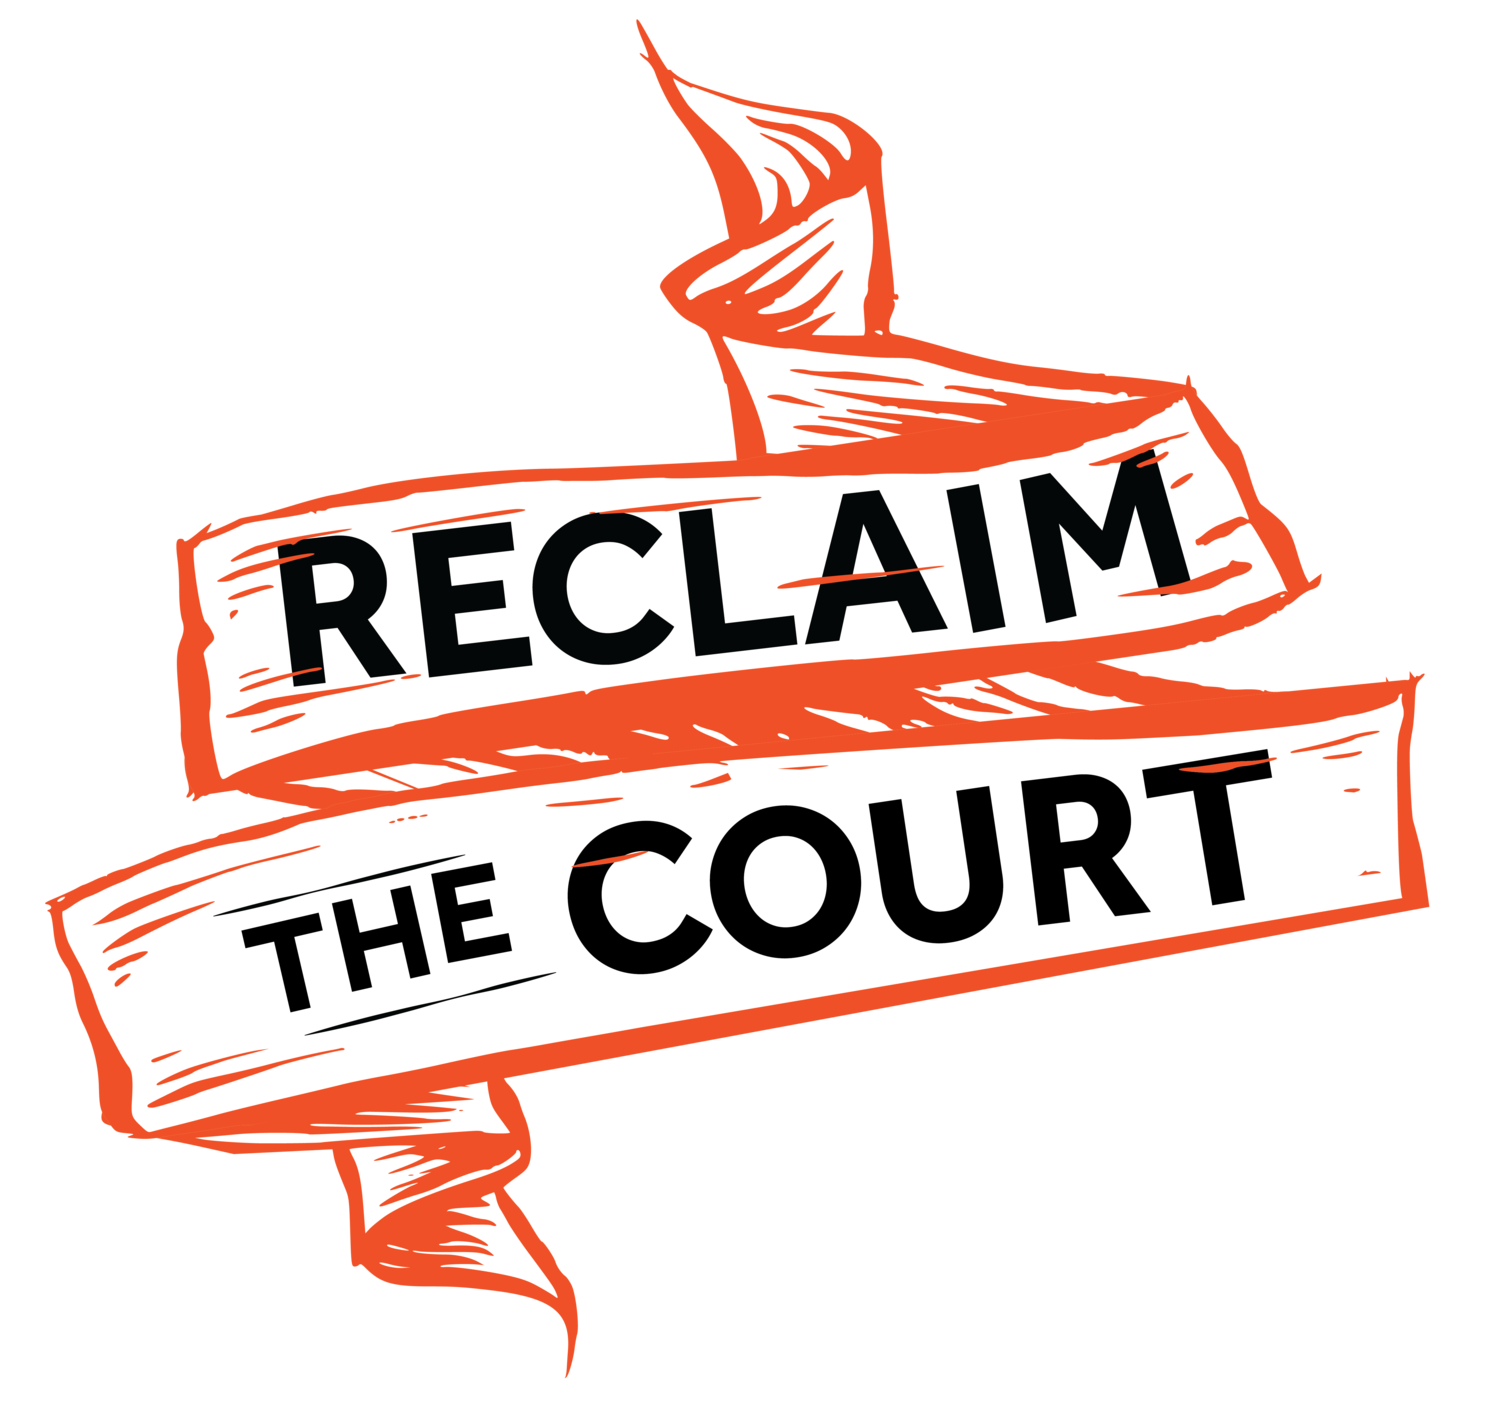 Reclaim the Court